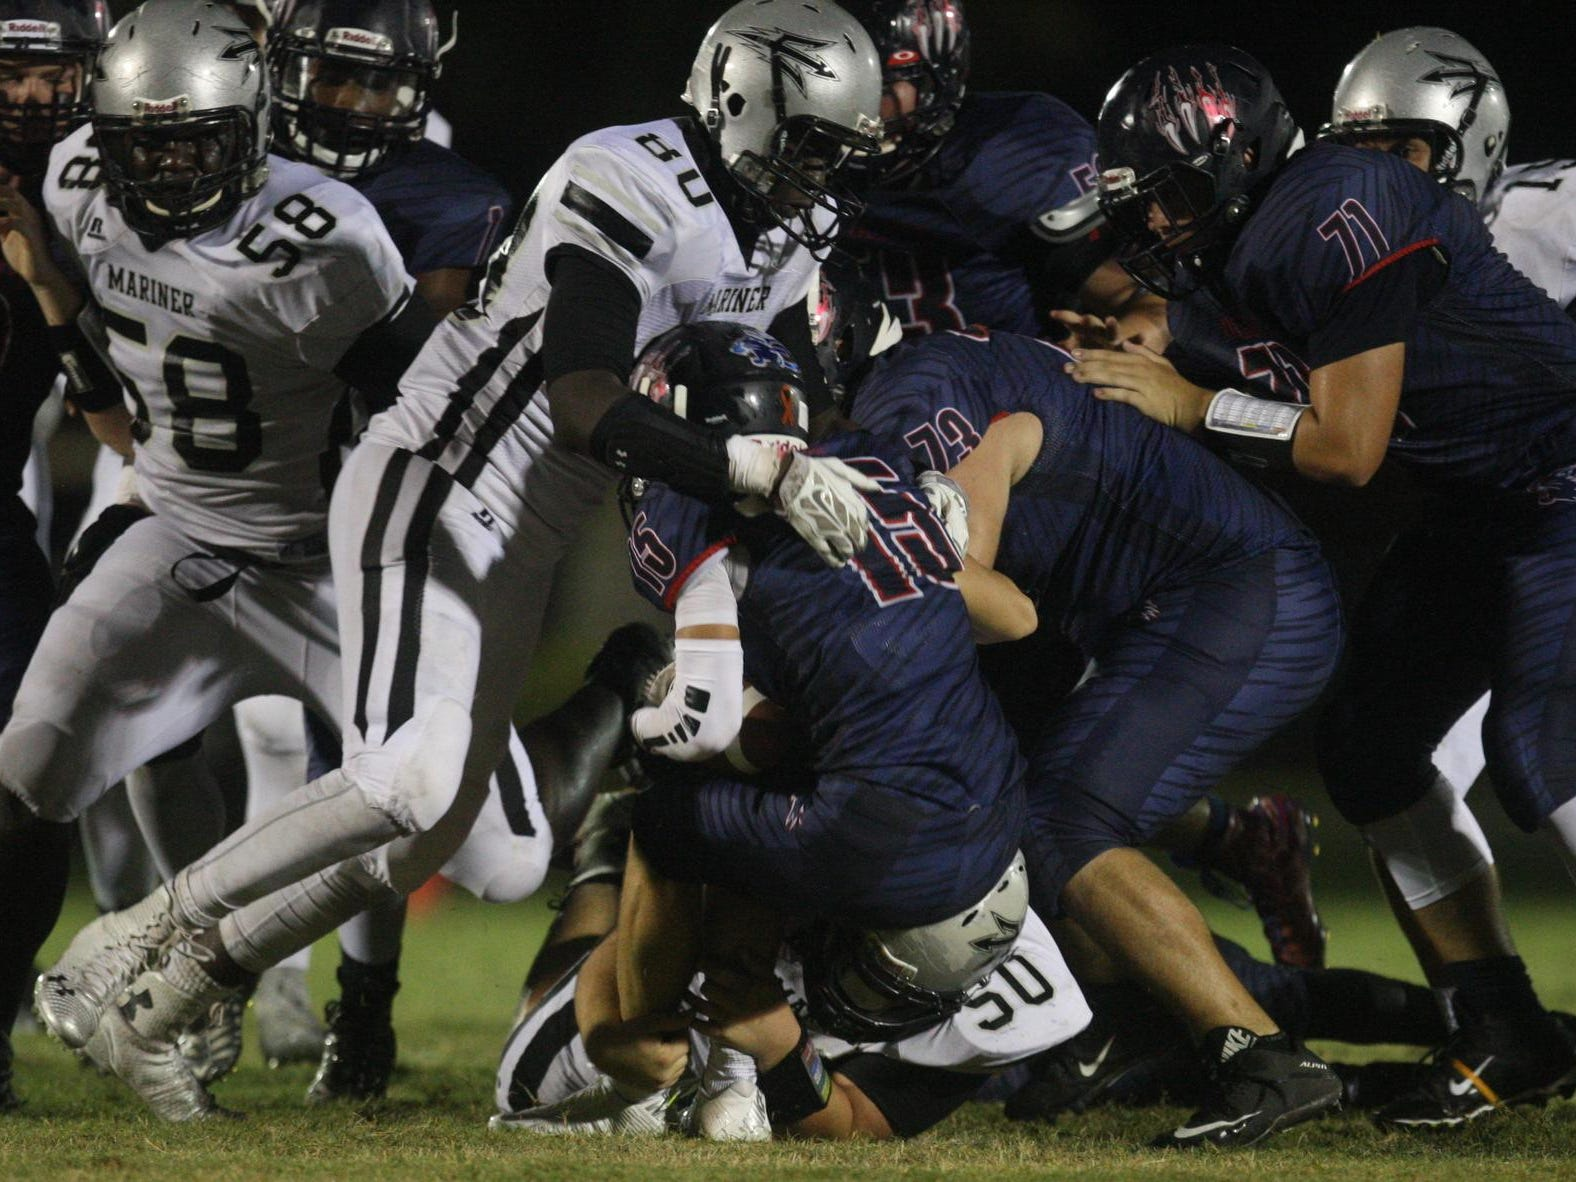 Mariner High is chasing its first winning season since 2007.